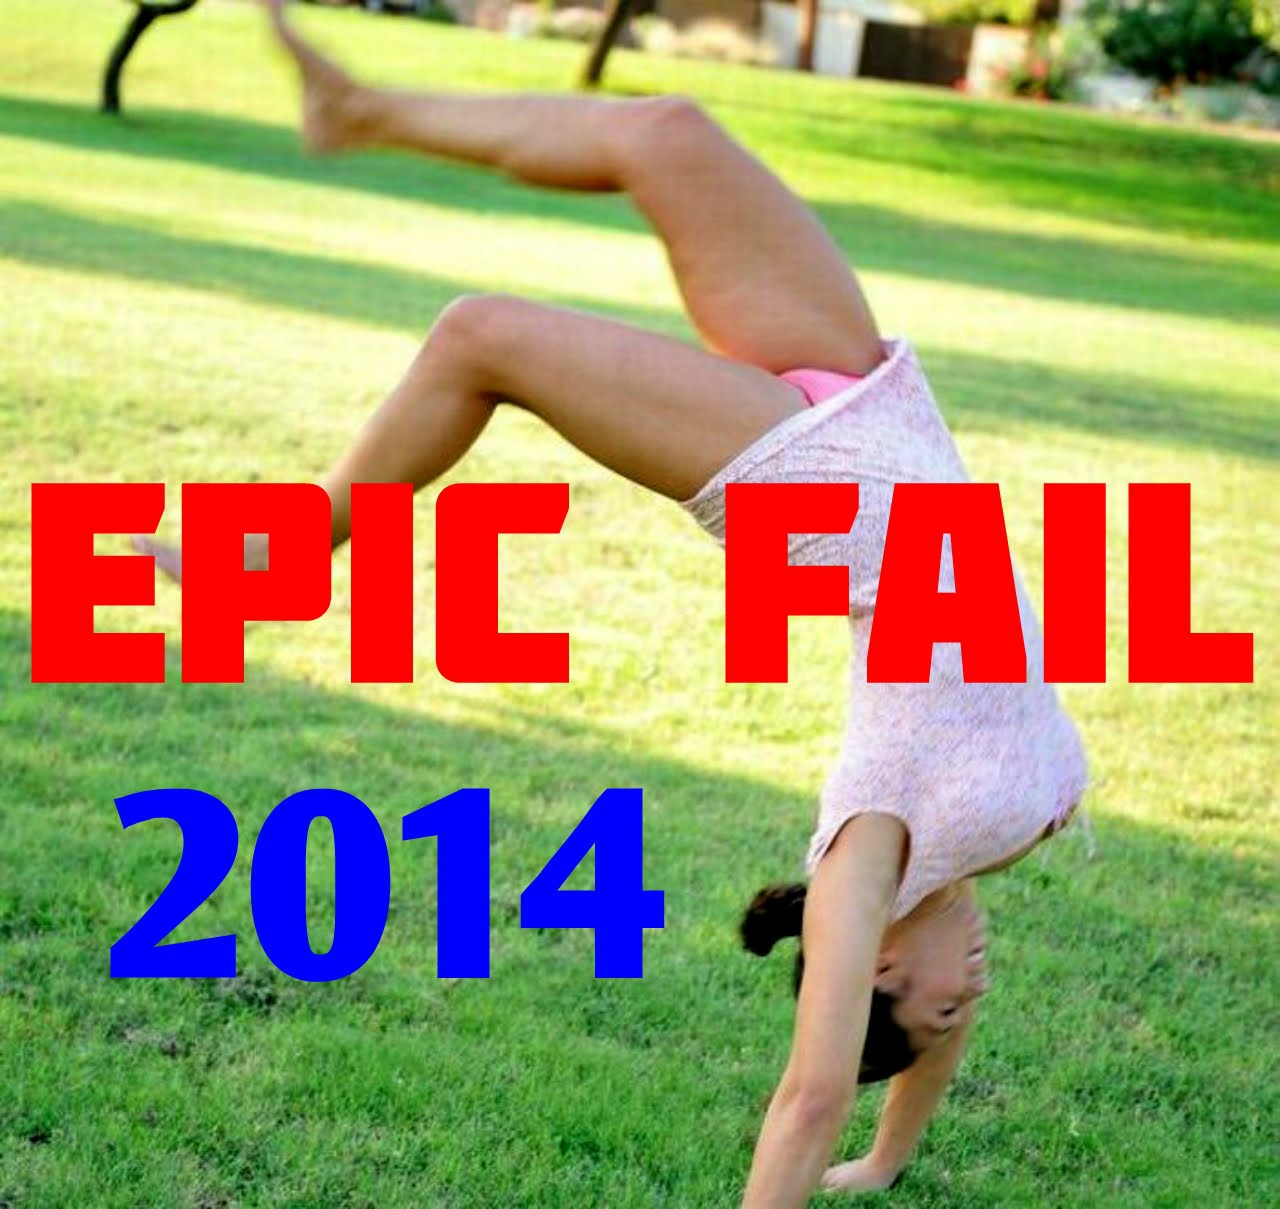 BEST EPIC FAIL /Win Compilation/ FAILS August 2014 #2